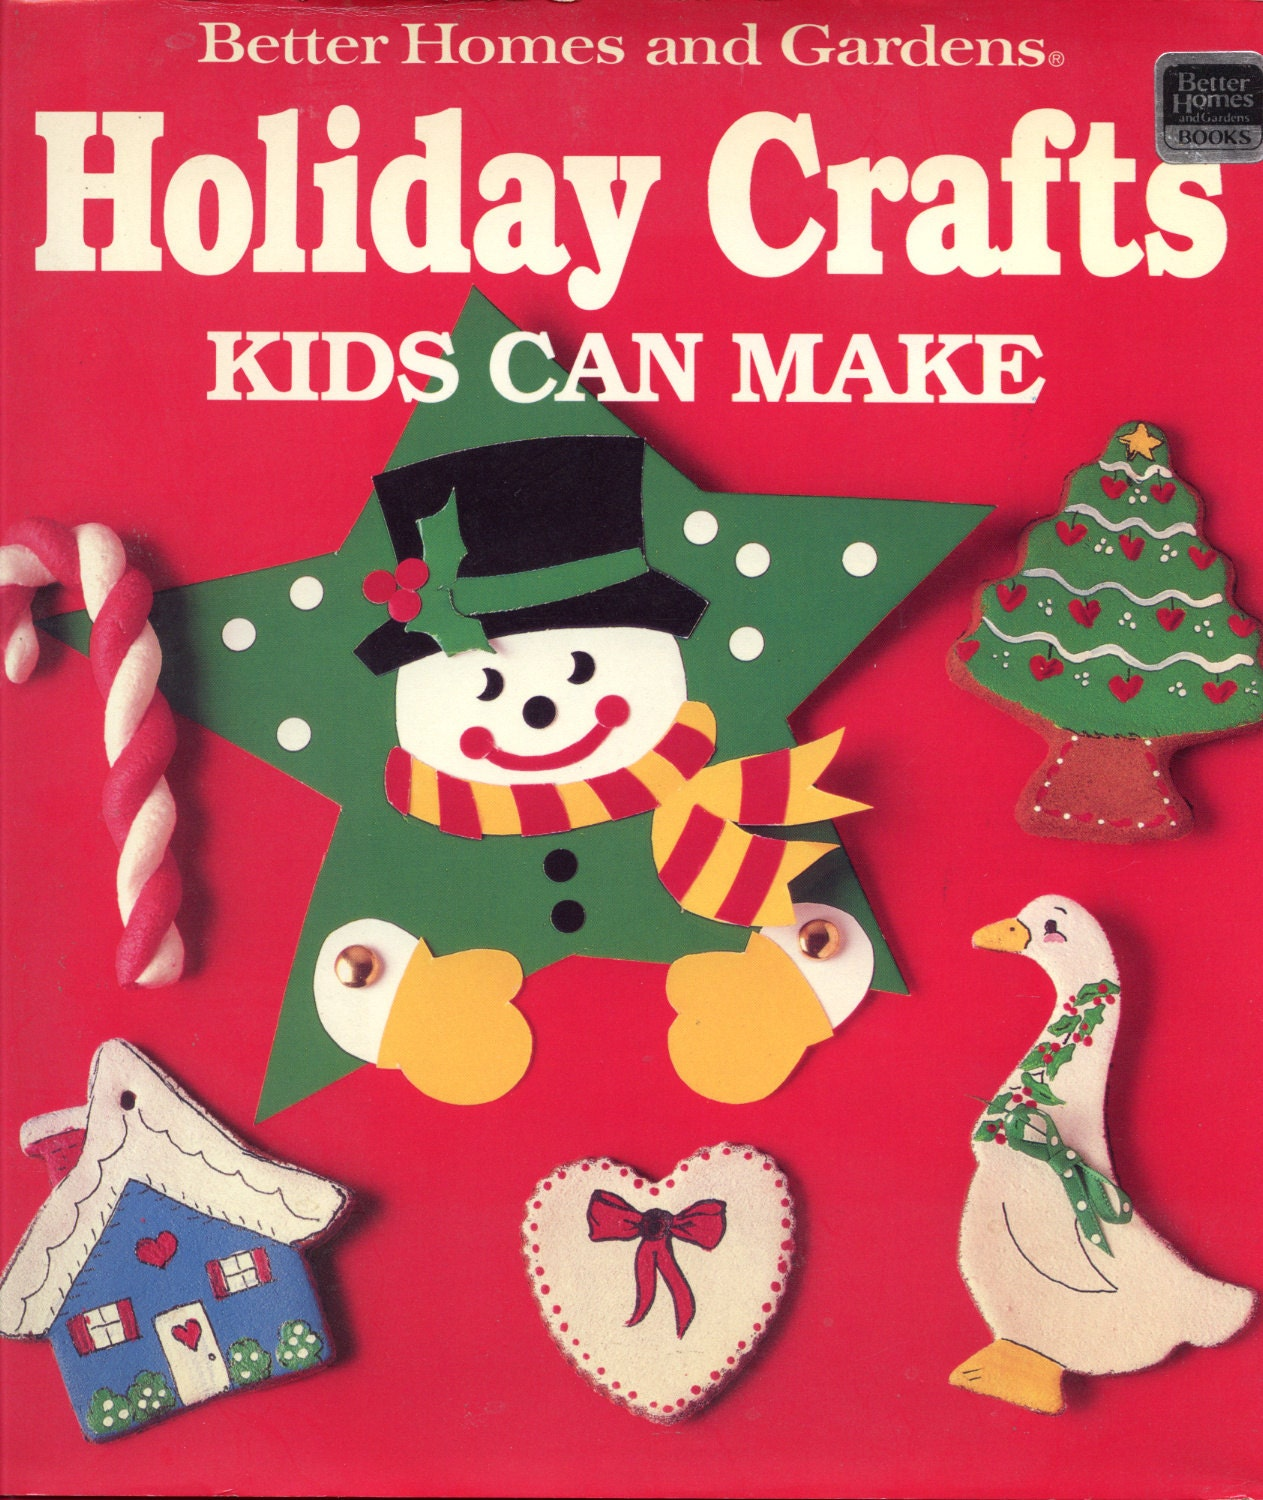 better homes and gardens holiday crafts kids can make craft